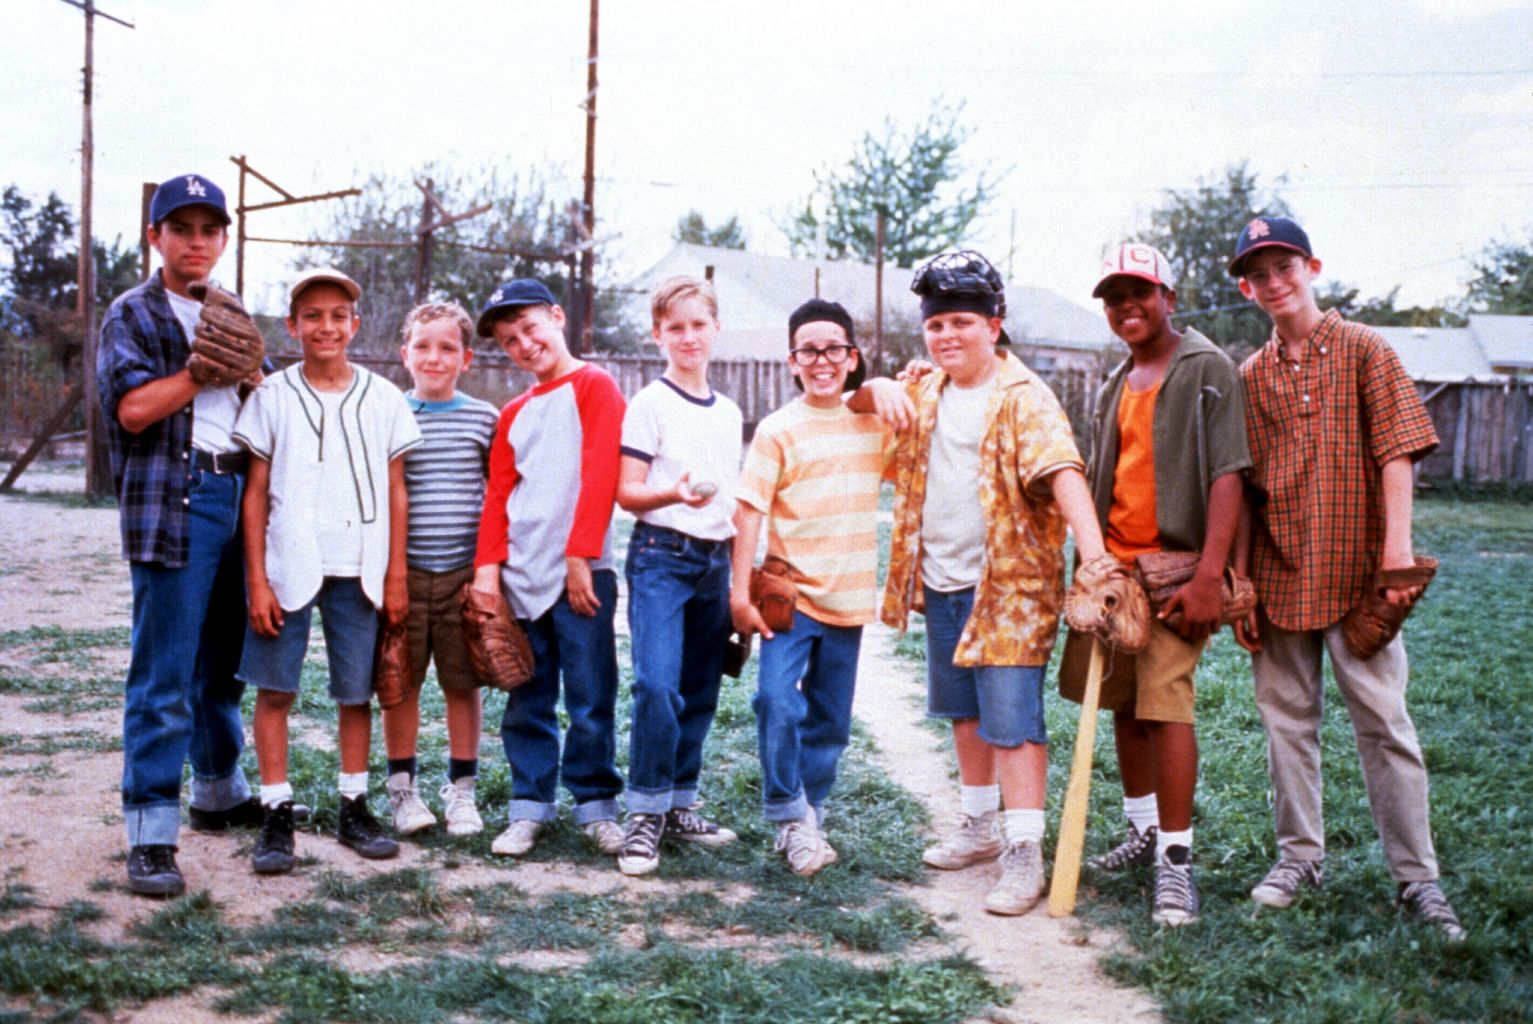 The Sandlot boys